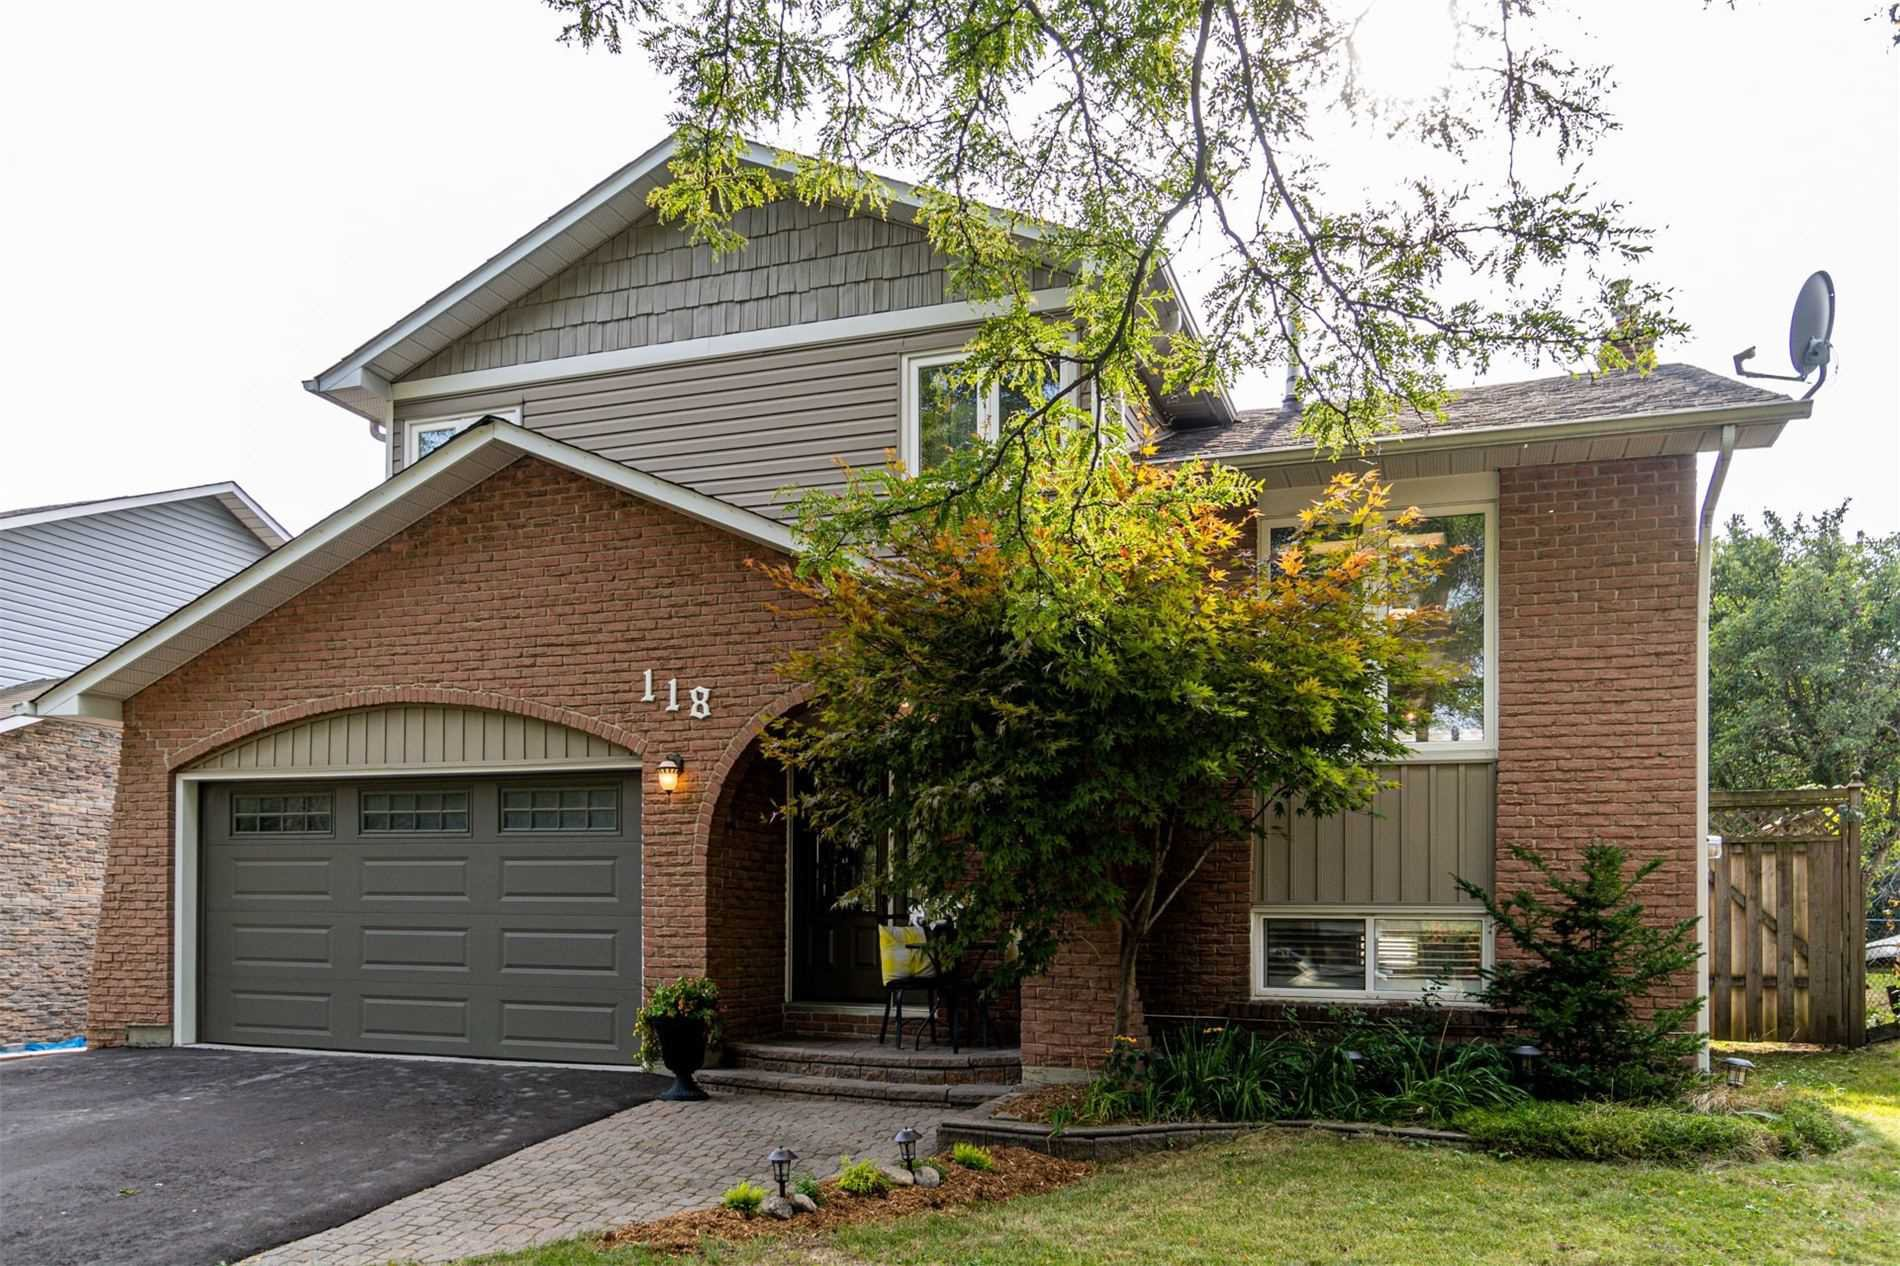 Main Photo: 118 Guthrie Crescent in Whitby: Lynde Creek House (Sidesplit 5) for sale : MLS®# E4896414